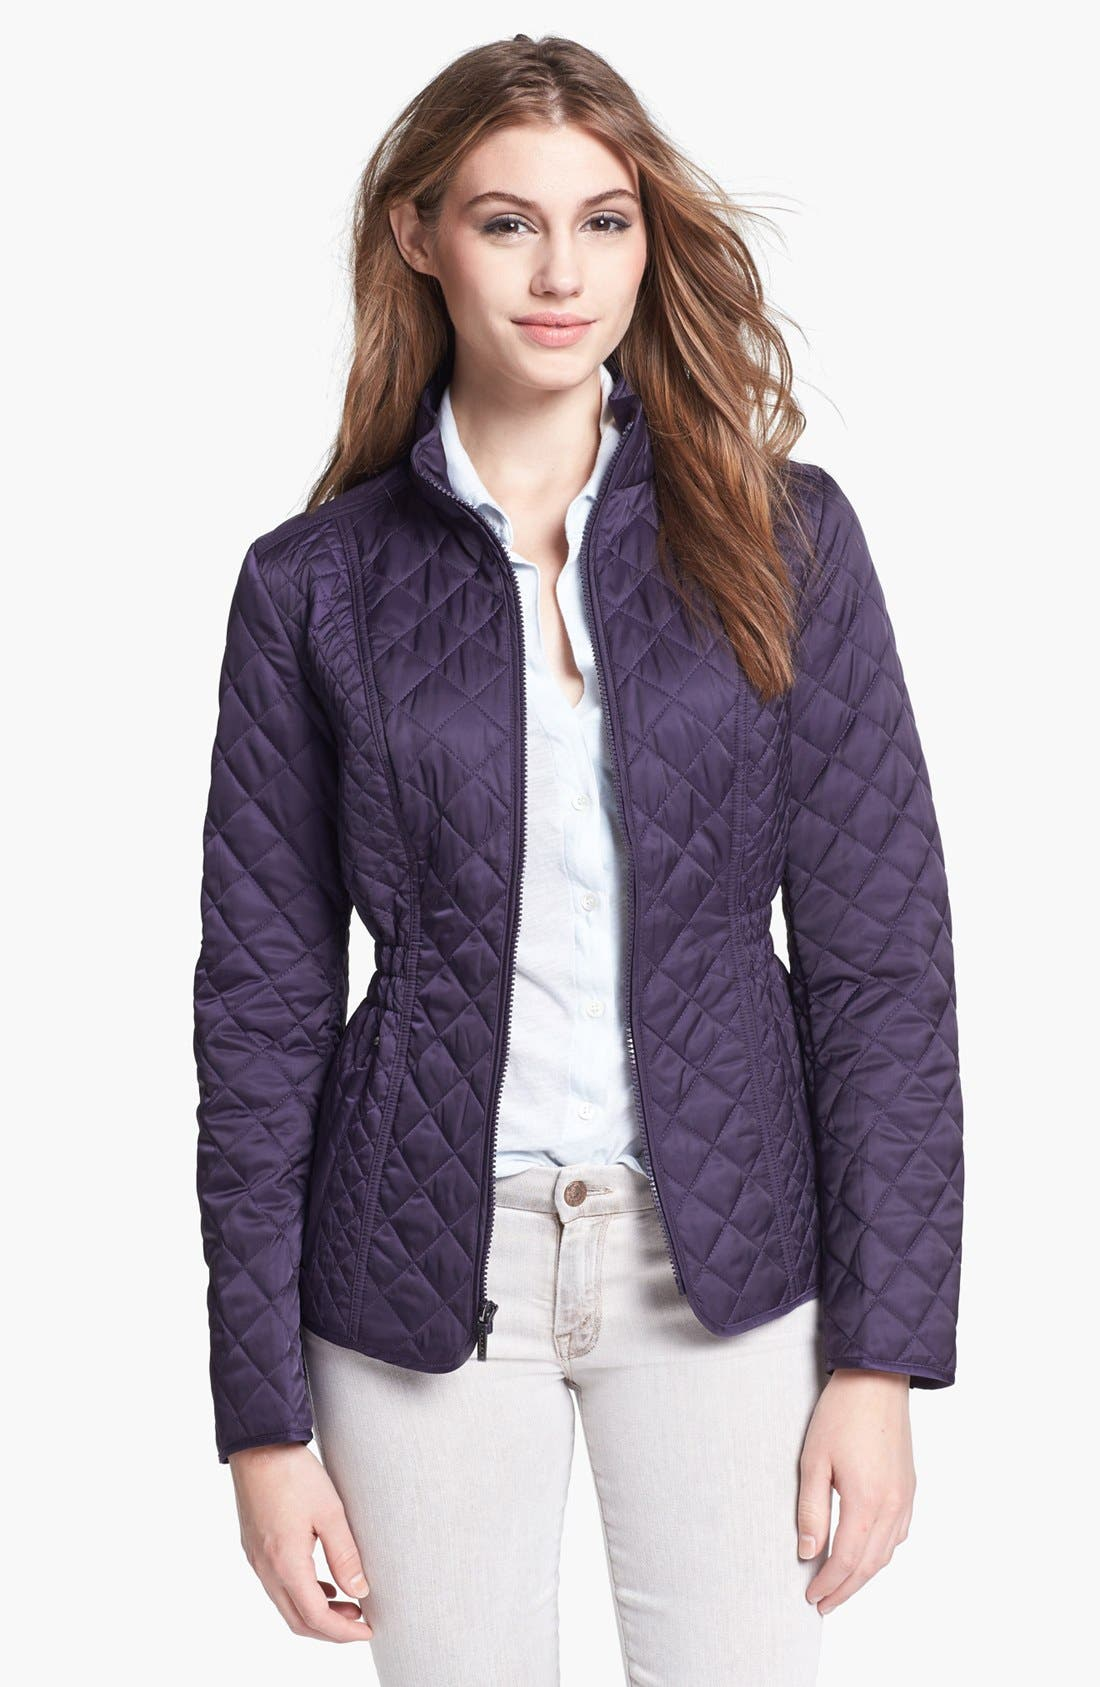 Alternate Image 1 Selected - Laundry by Shelli Segal Quilted Jacket (Nordstrom Exclusive)